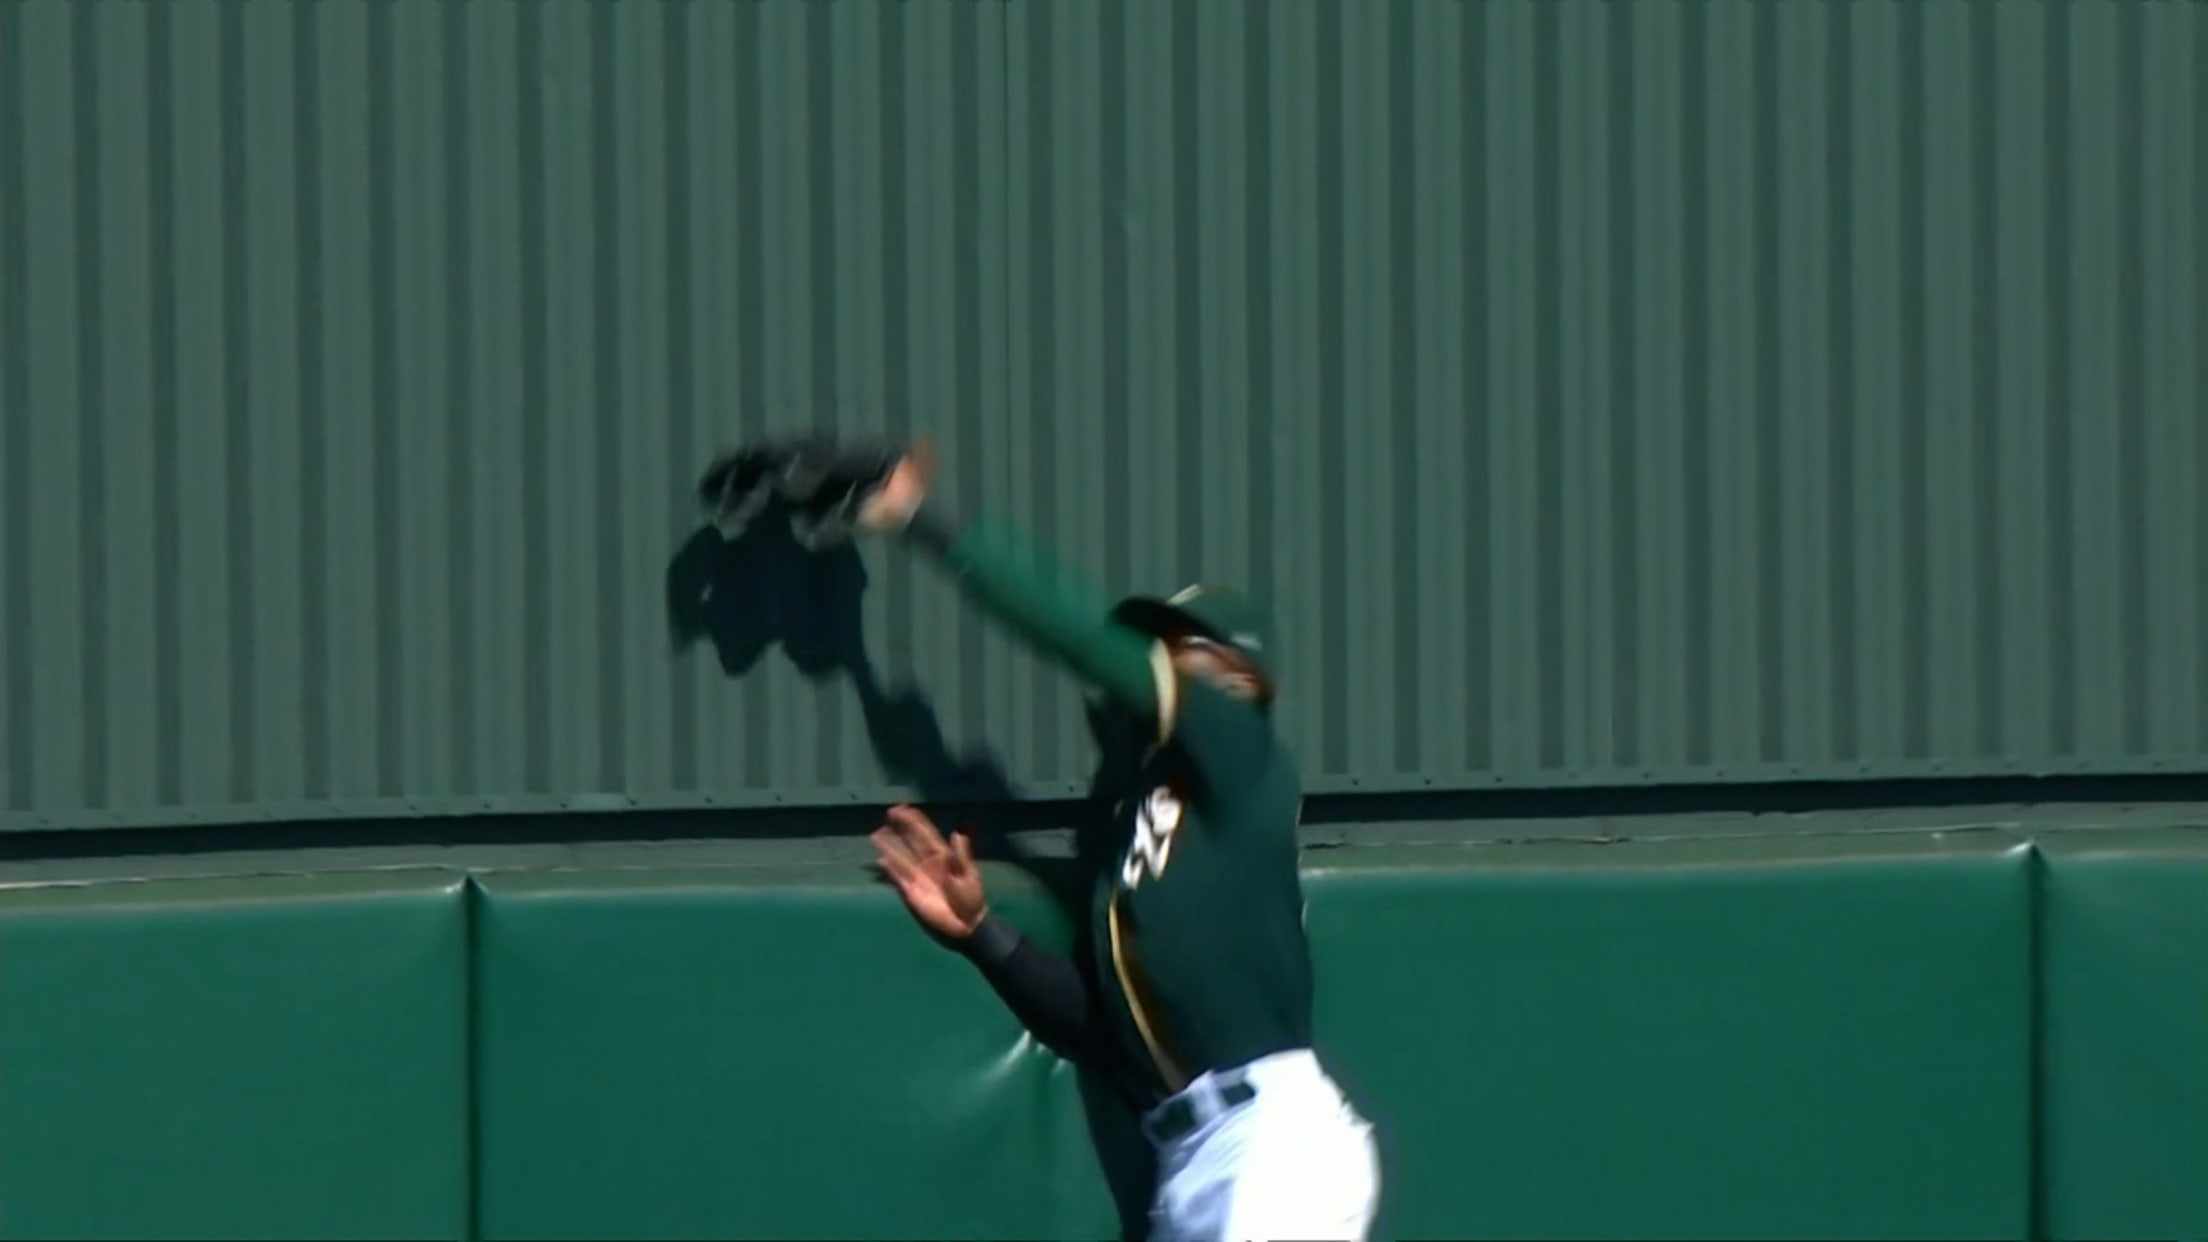 Buddy Reed's leaping catch